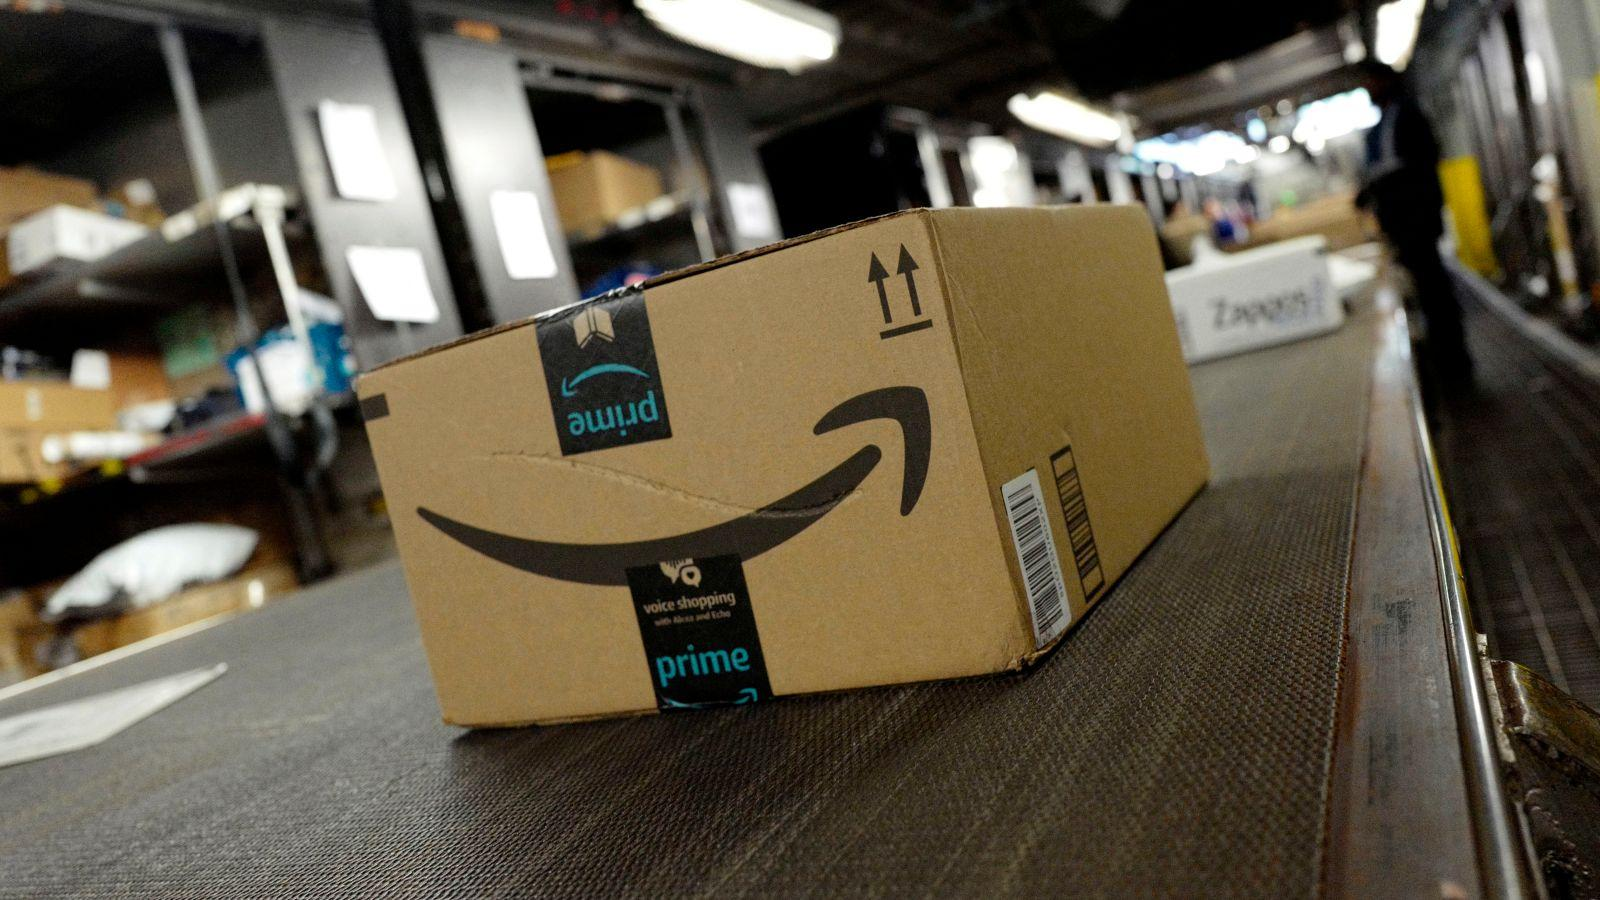 Prime Day drives record traffic to Amazon's Australian site